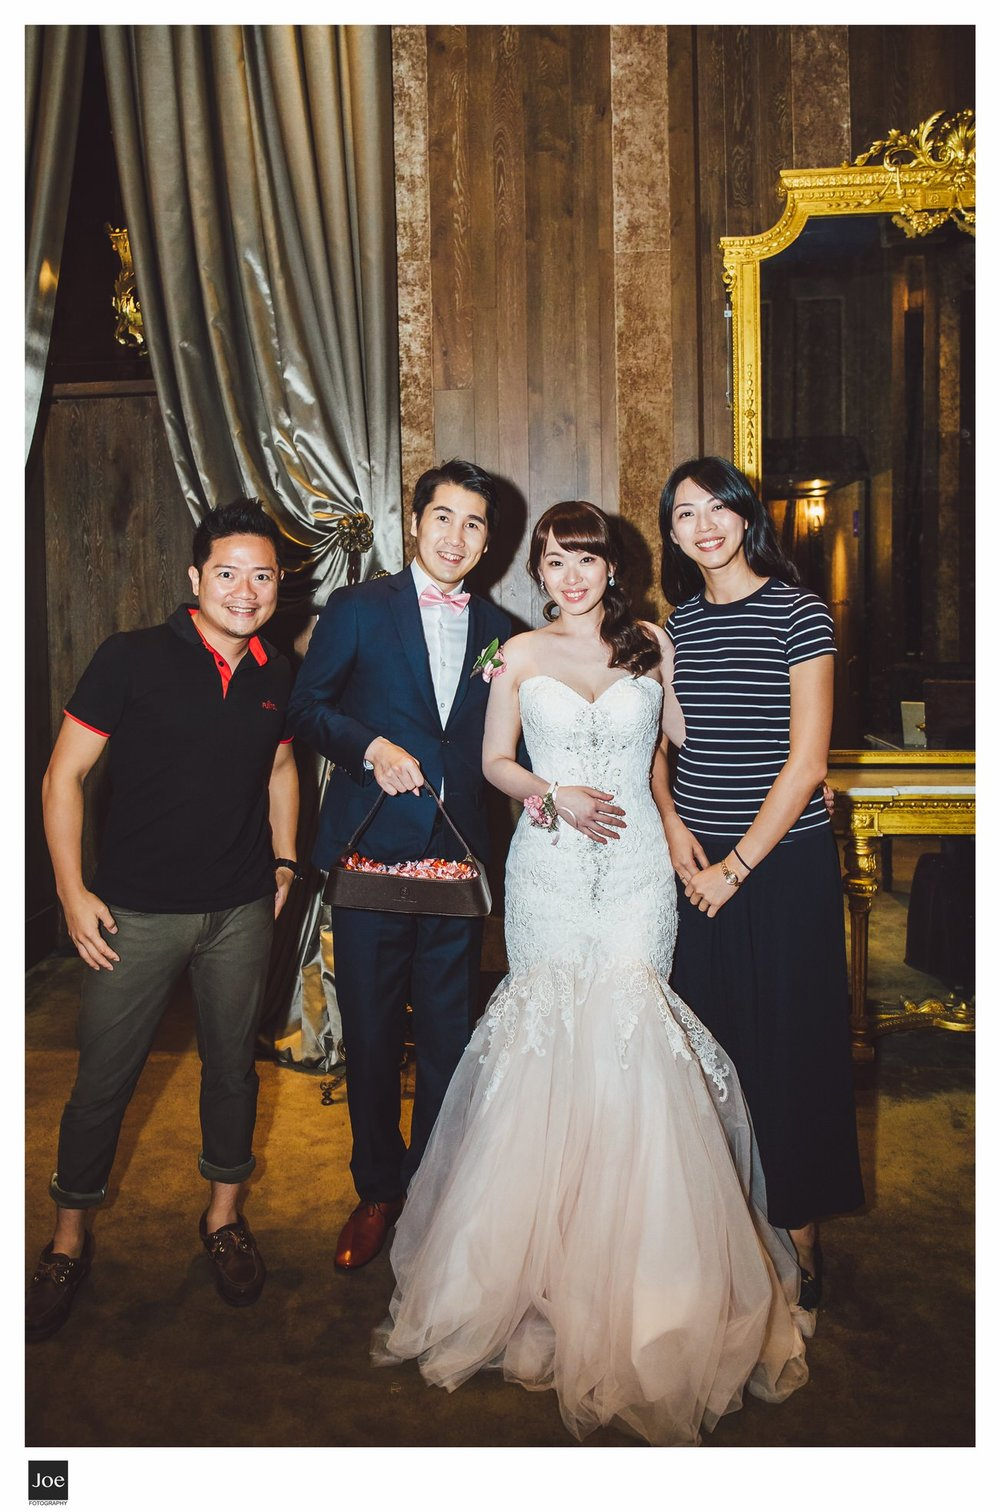 joe-fotography-wedding-photo-palais-de-chine-hotel-051.jpg